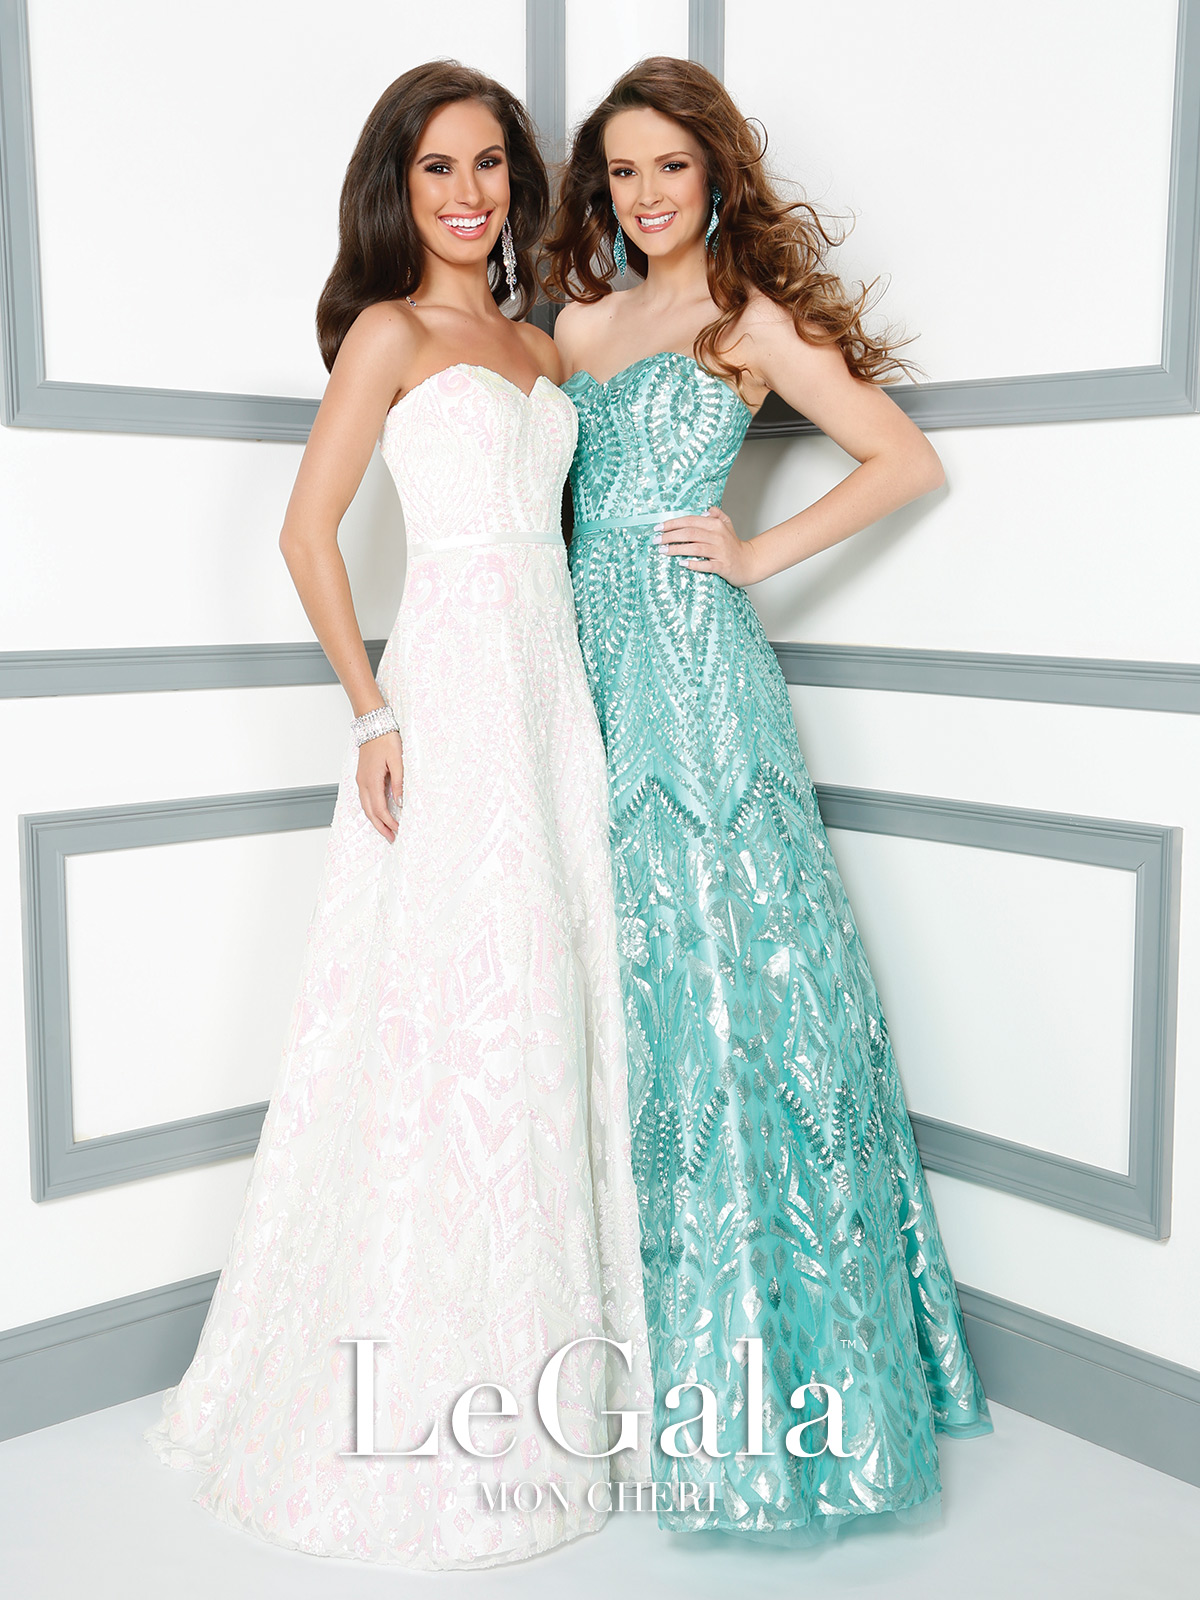 Prom and Formal Dresses - All Brides Beautiful